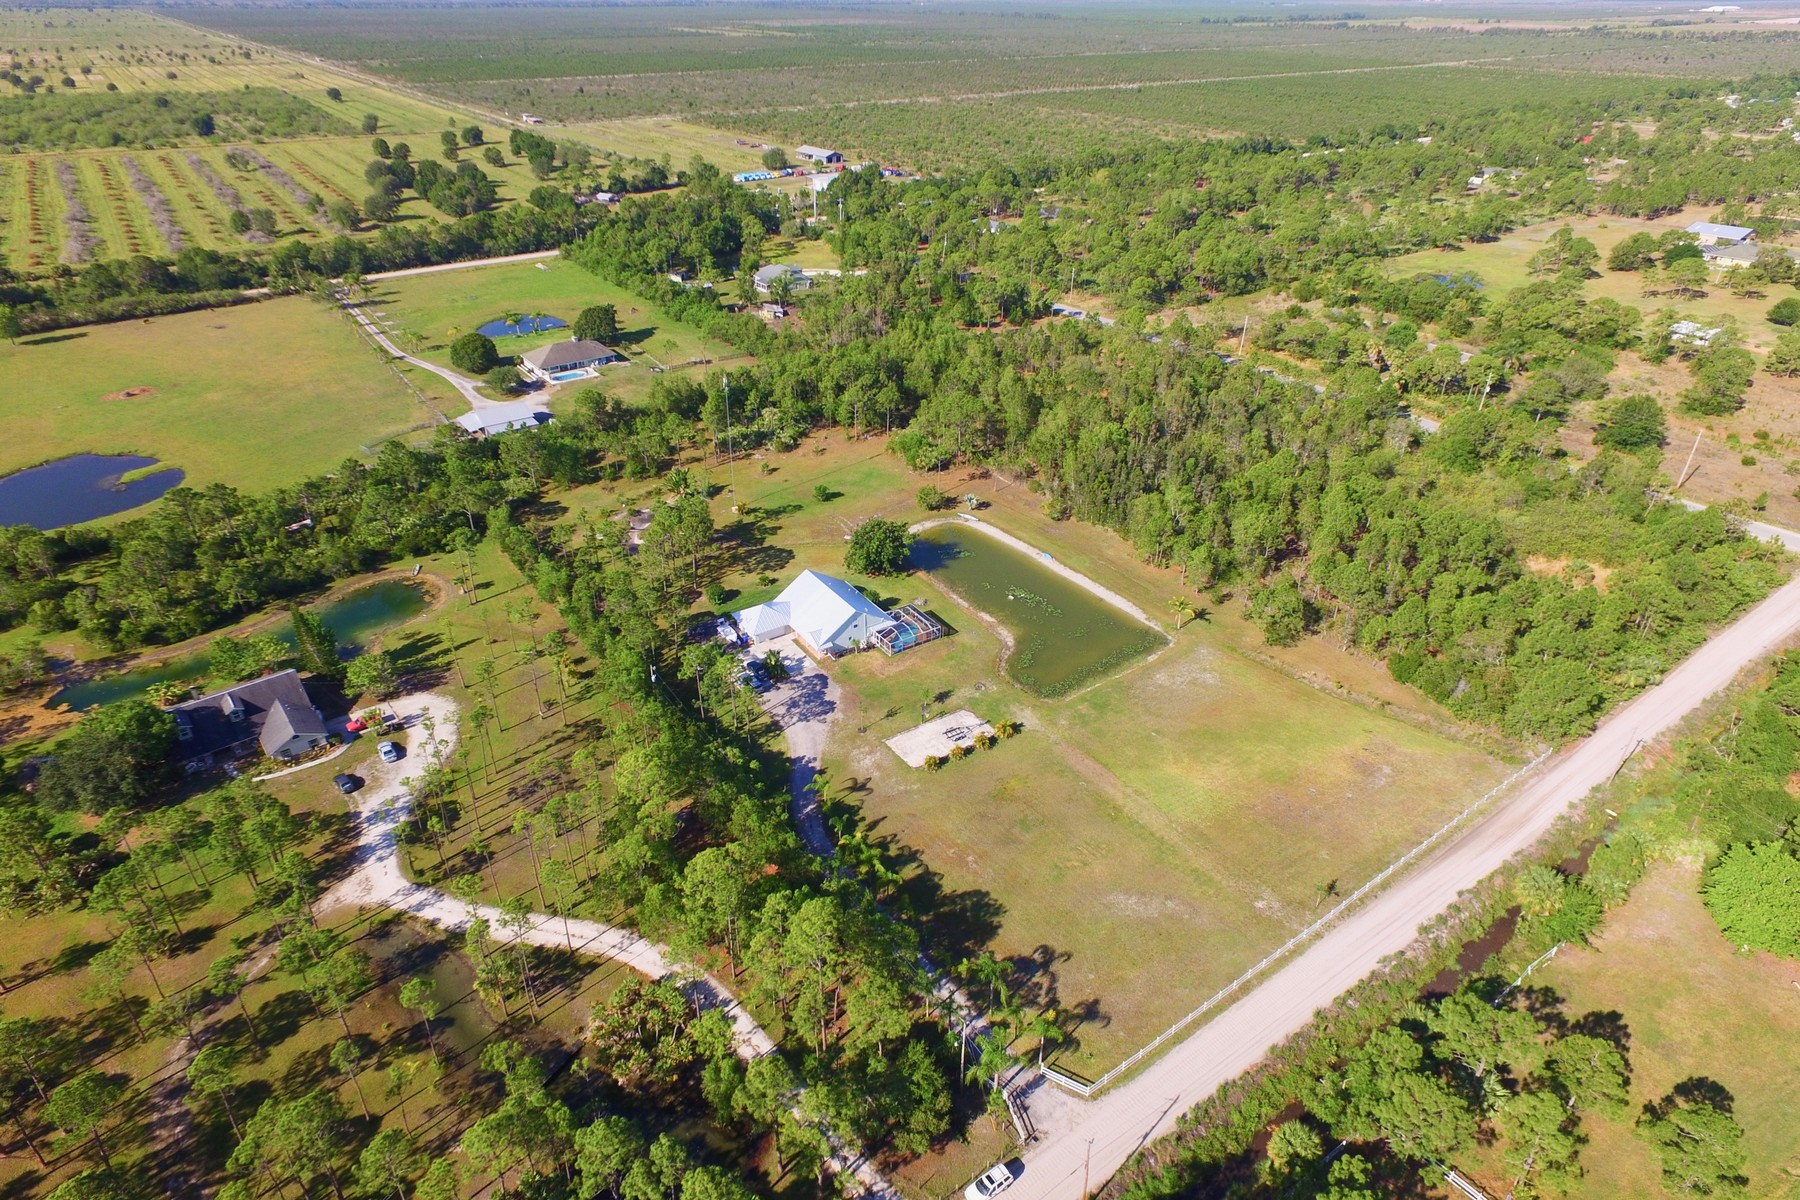 House for Sale at 5 Acre- Waterfront Home 12925 79th Street Fellsmere, Florida 32948 United States